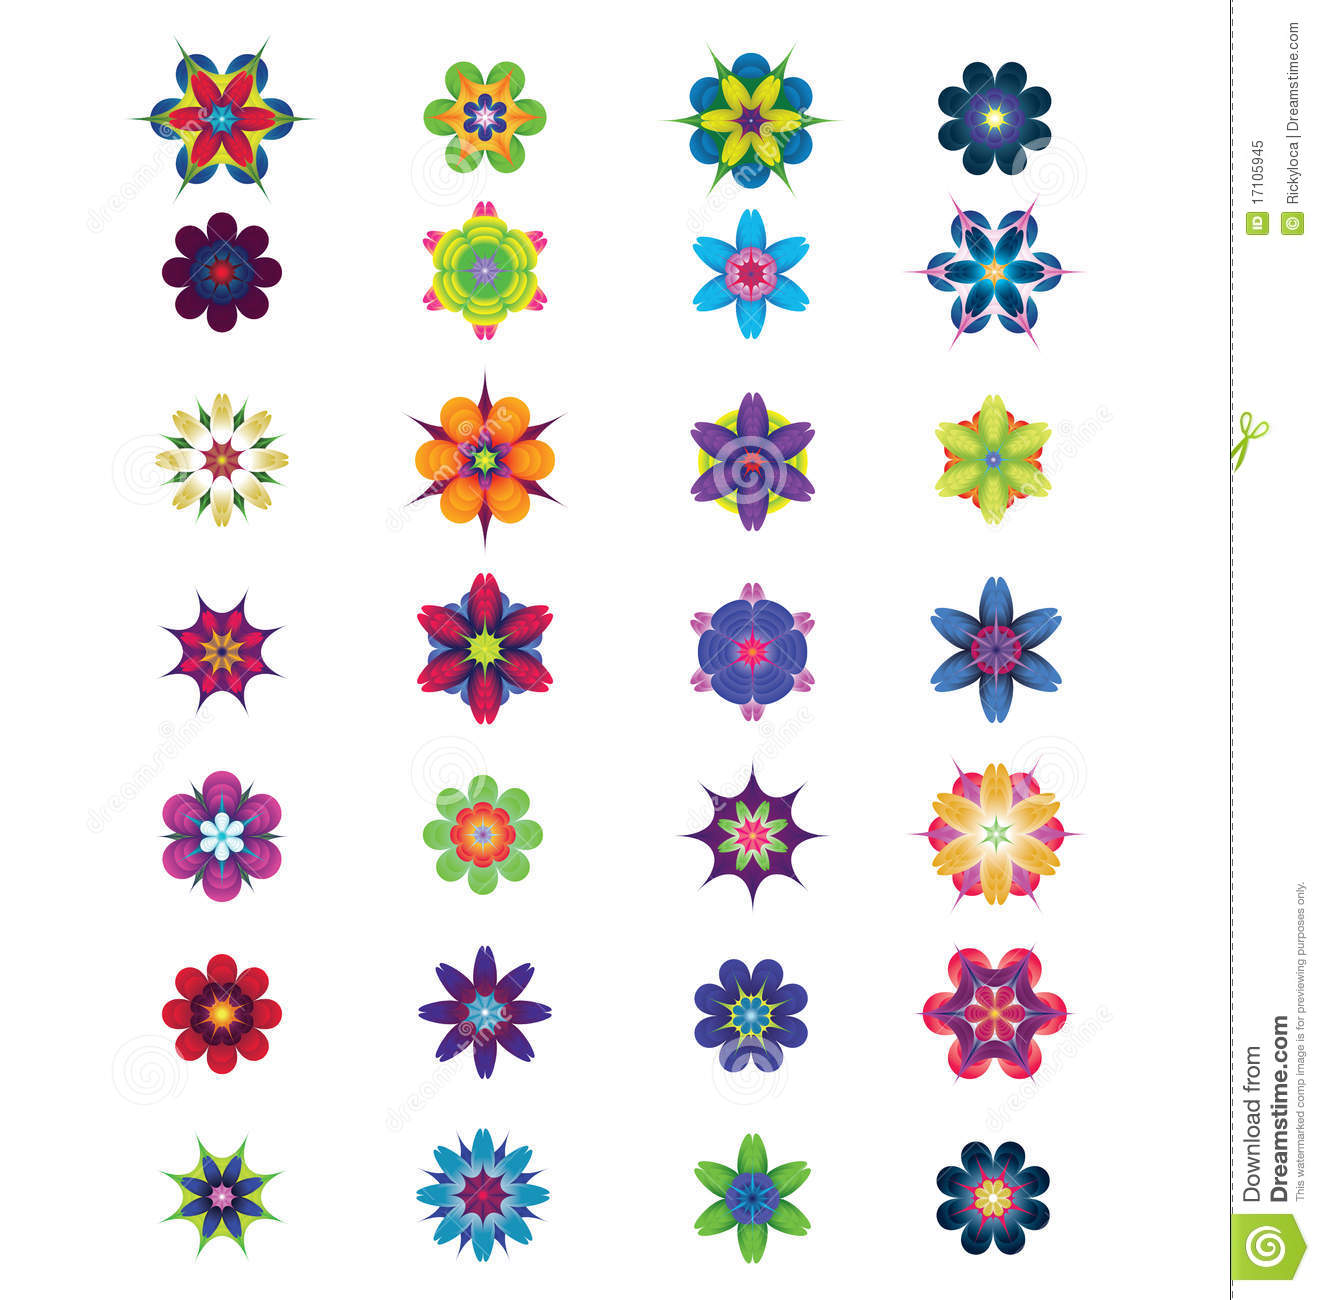 28 Different Colorful Abstract Flowers For Design Stock